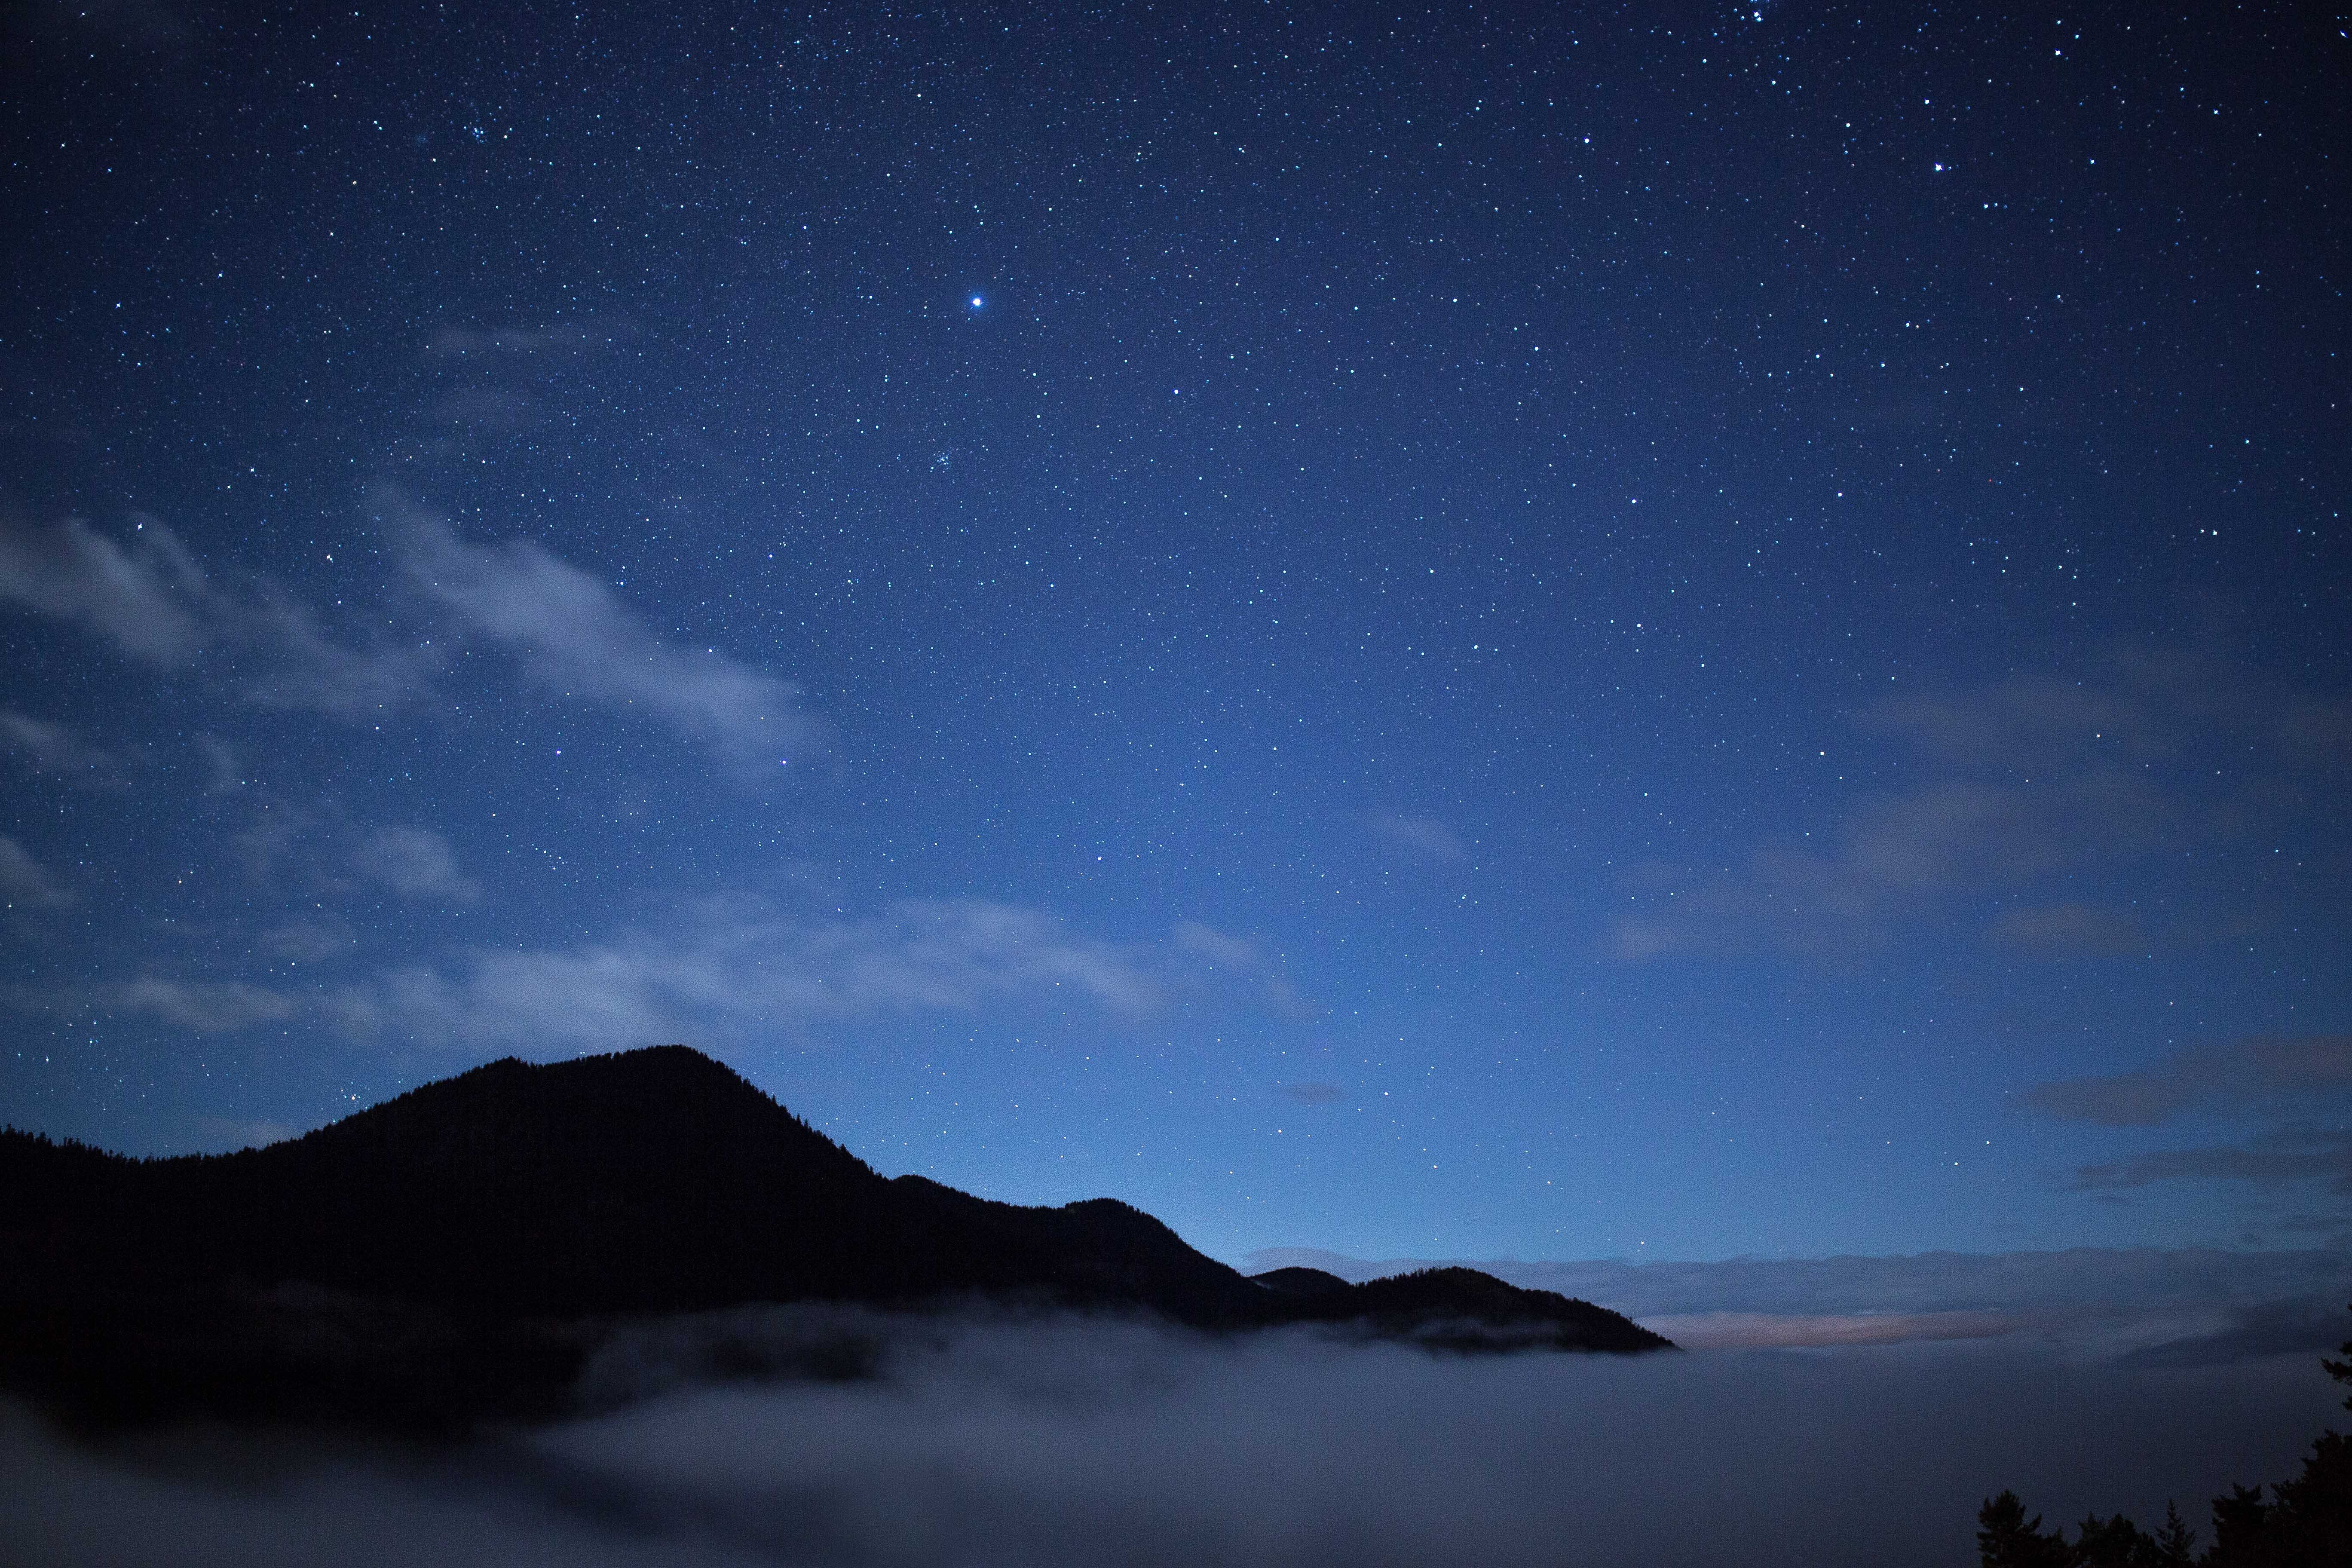 mountain and clouds during nighttime